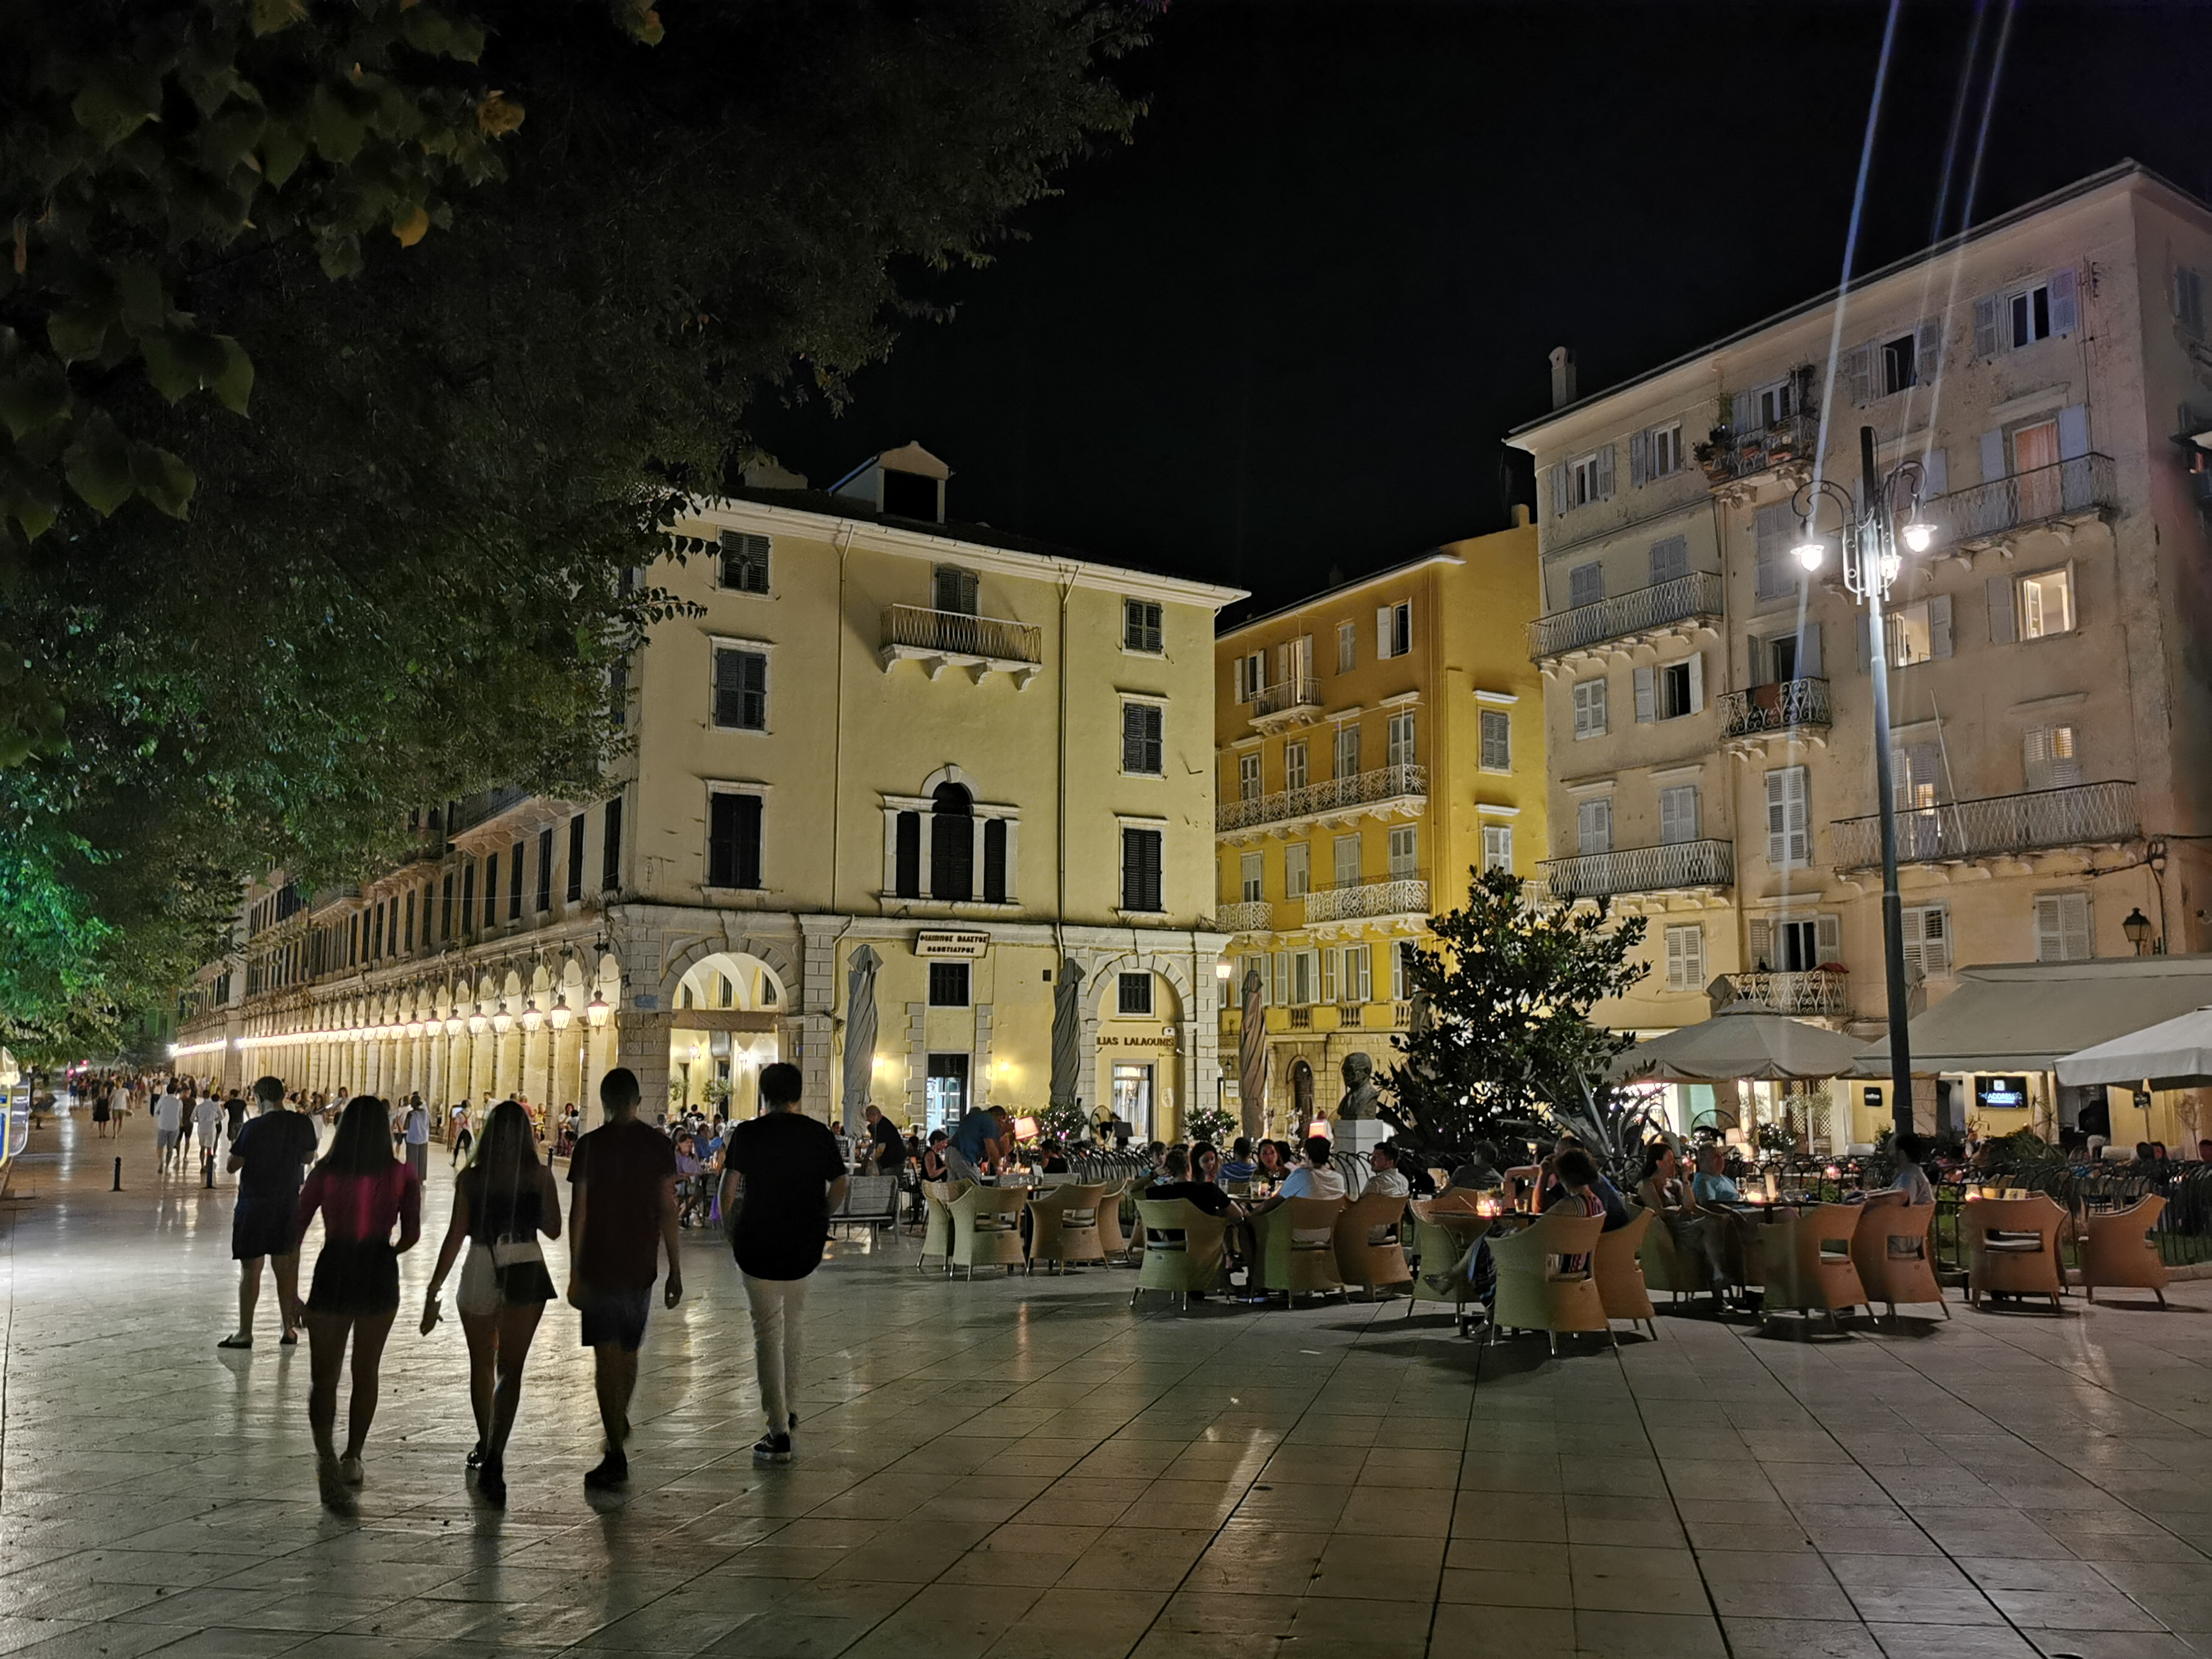 Corfu Town was lively and open for business